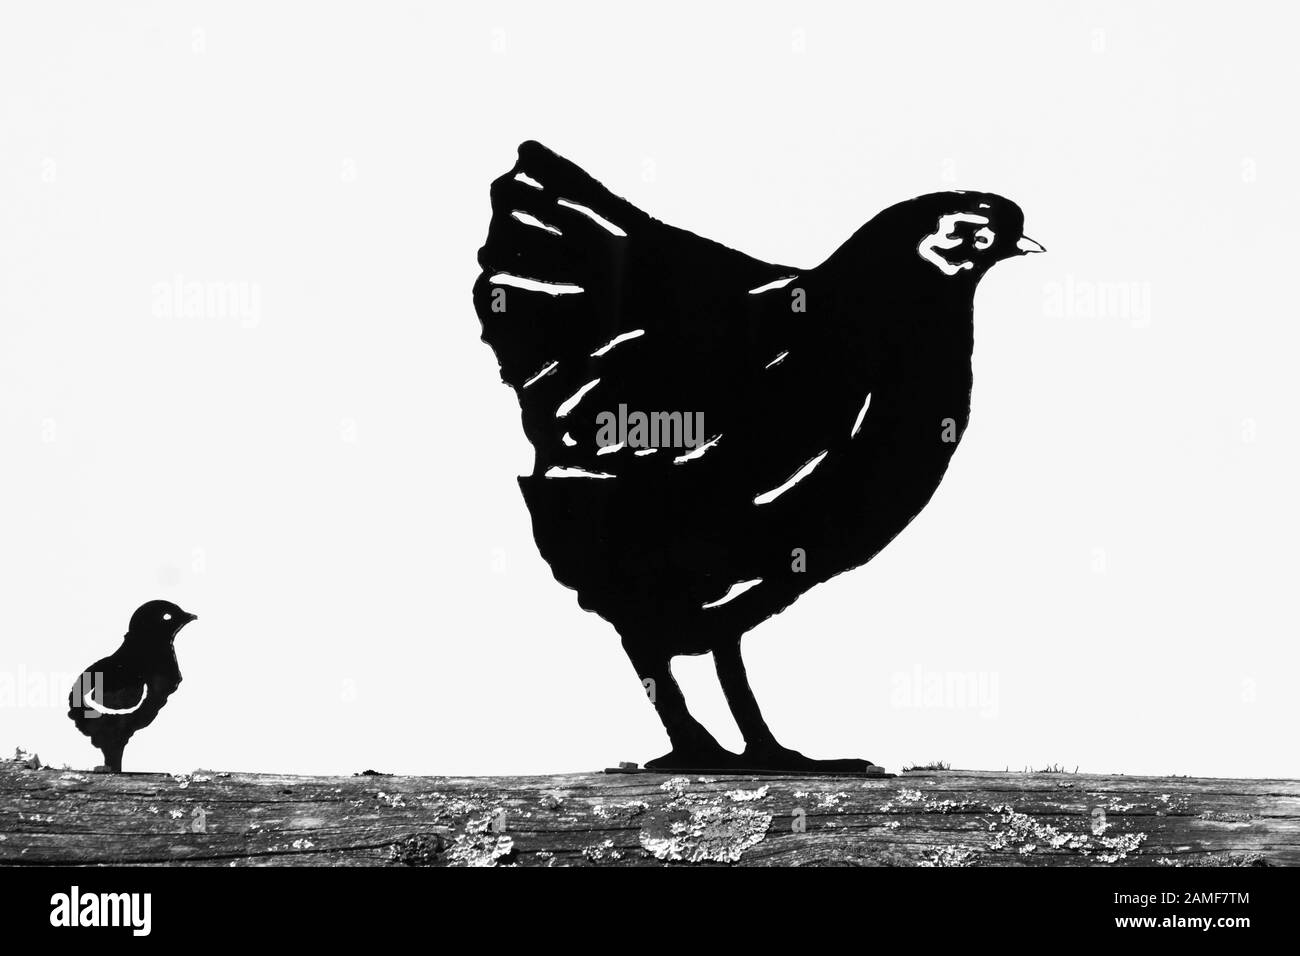 Chicken Silhouette – On this page presented 34+ chicken silhouette photos and images free for download and editing.